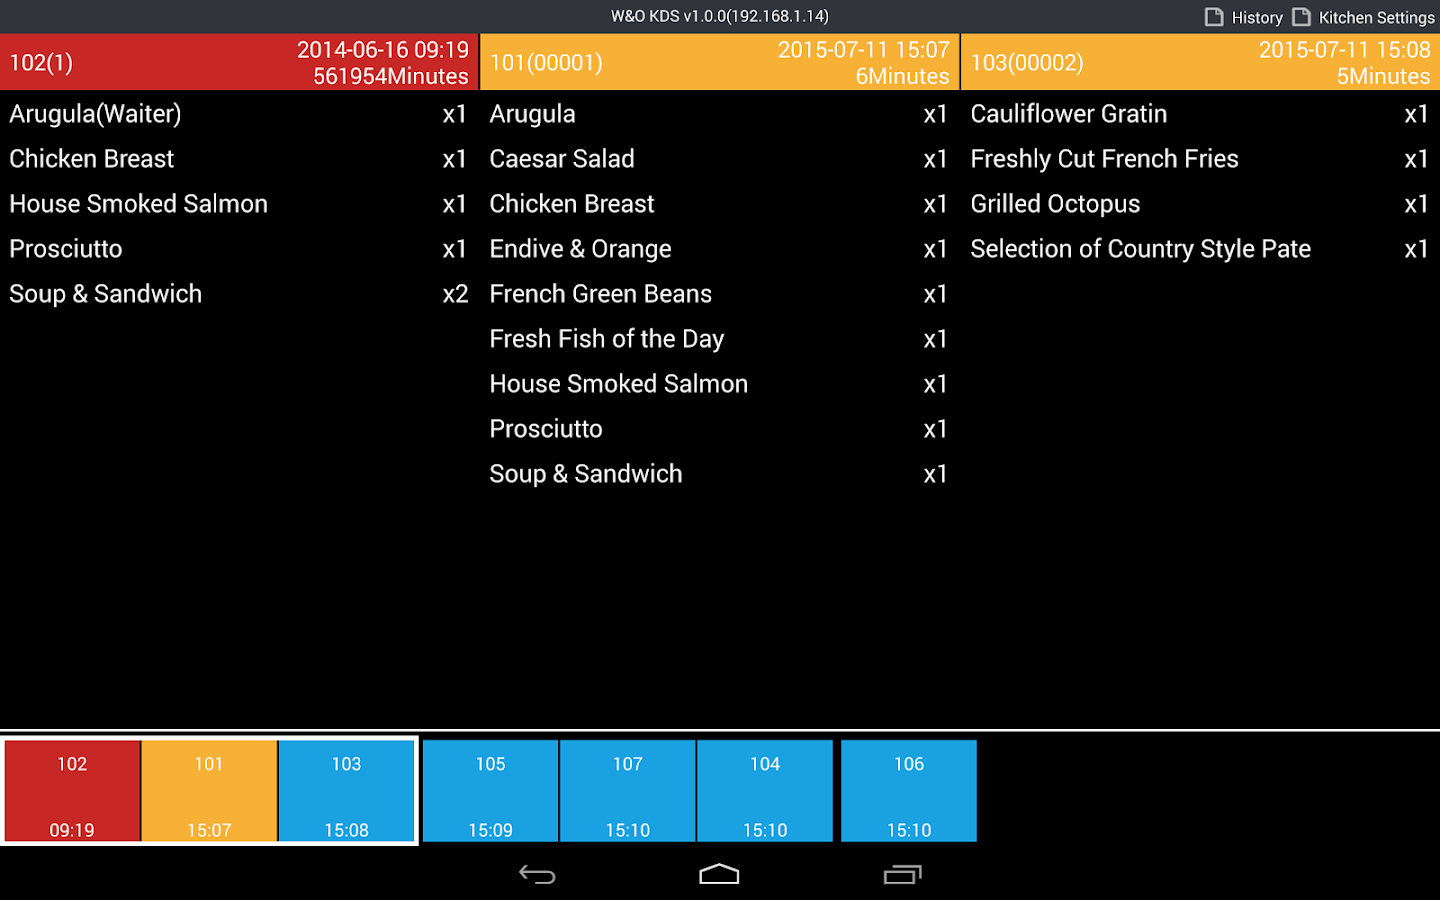 Kitchen Display Wo Kitchen Display Kds Android Apps On Google Play